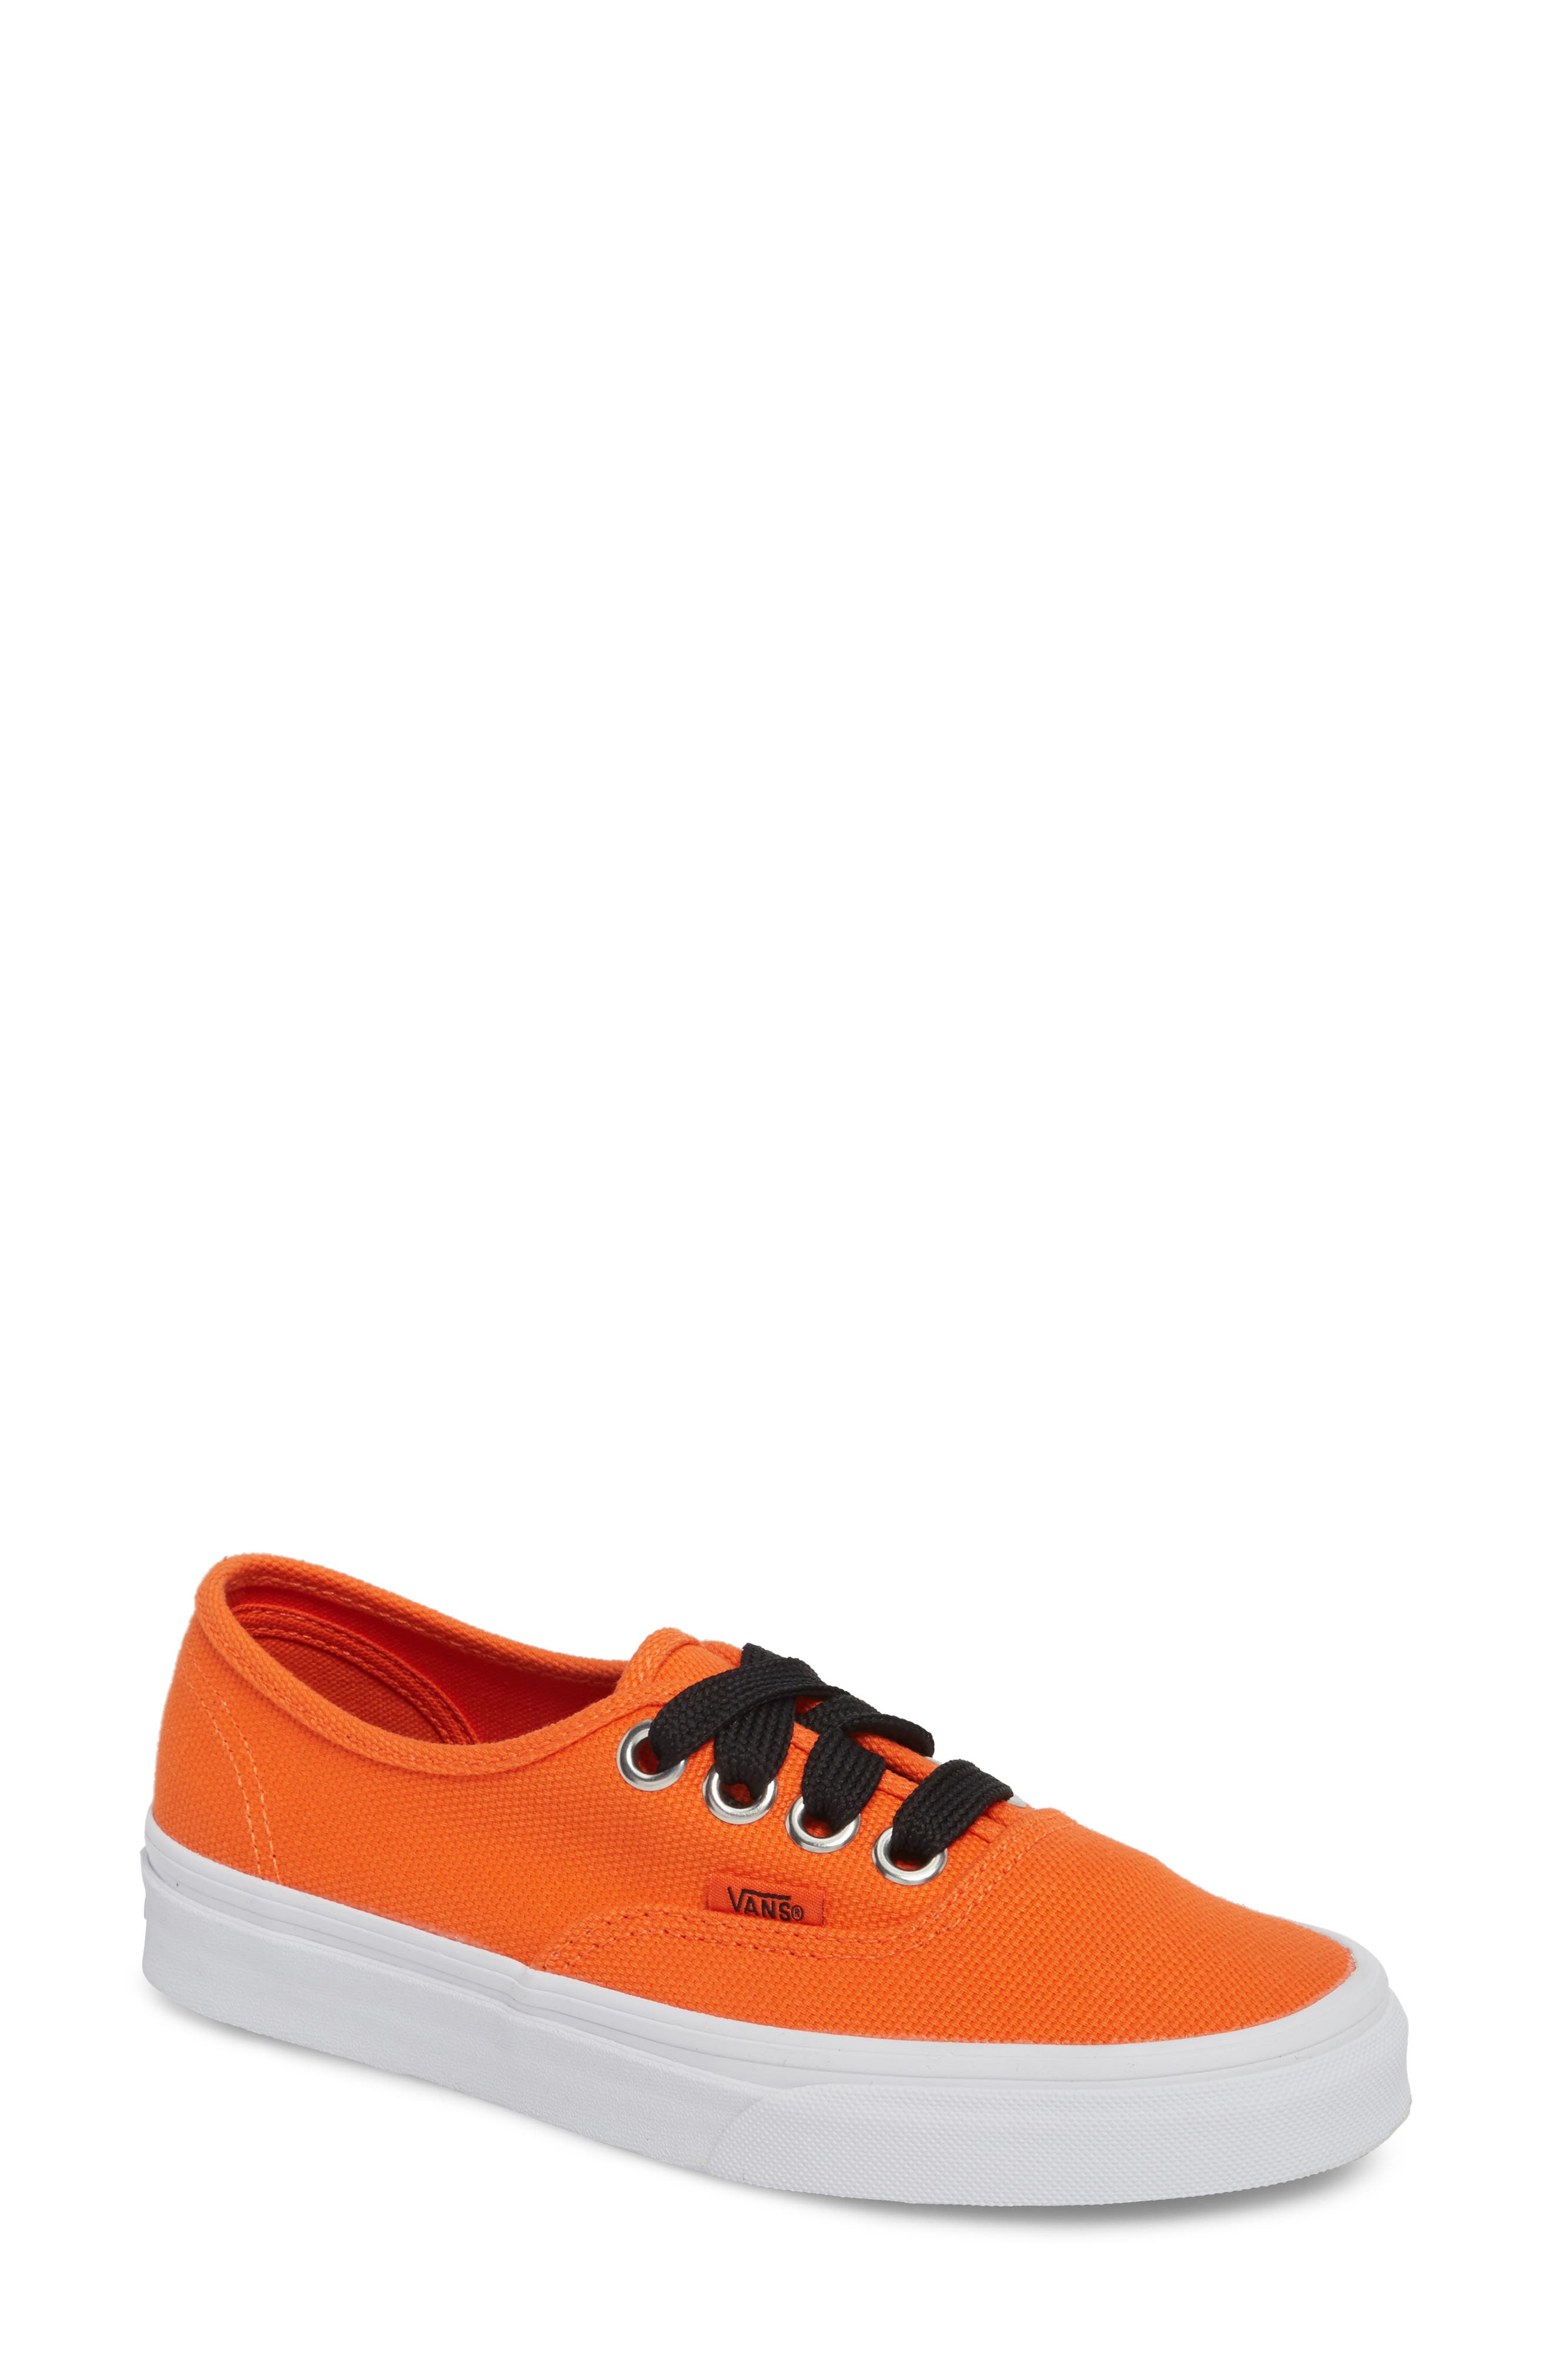 75ed68f1d7a vans authentic sneakers   OFF38% Discounts